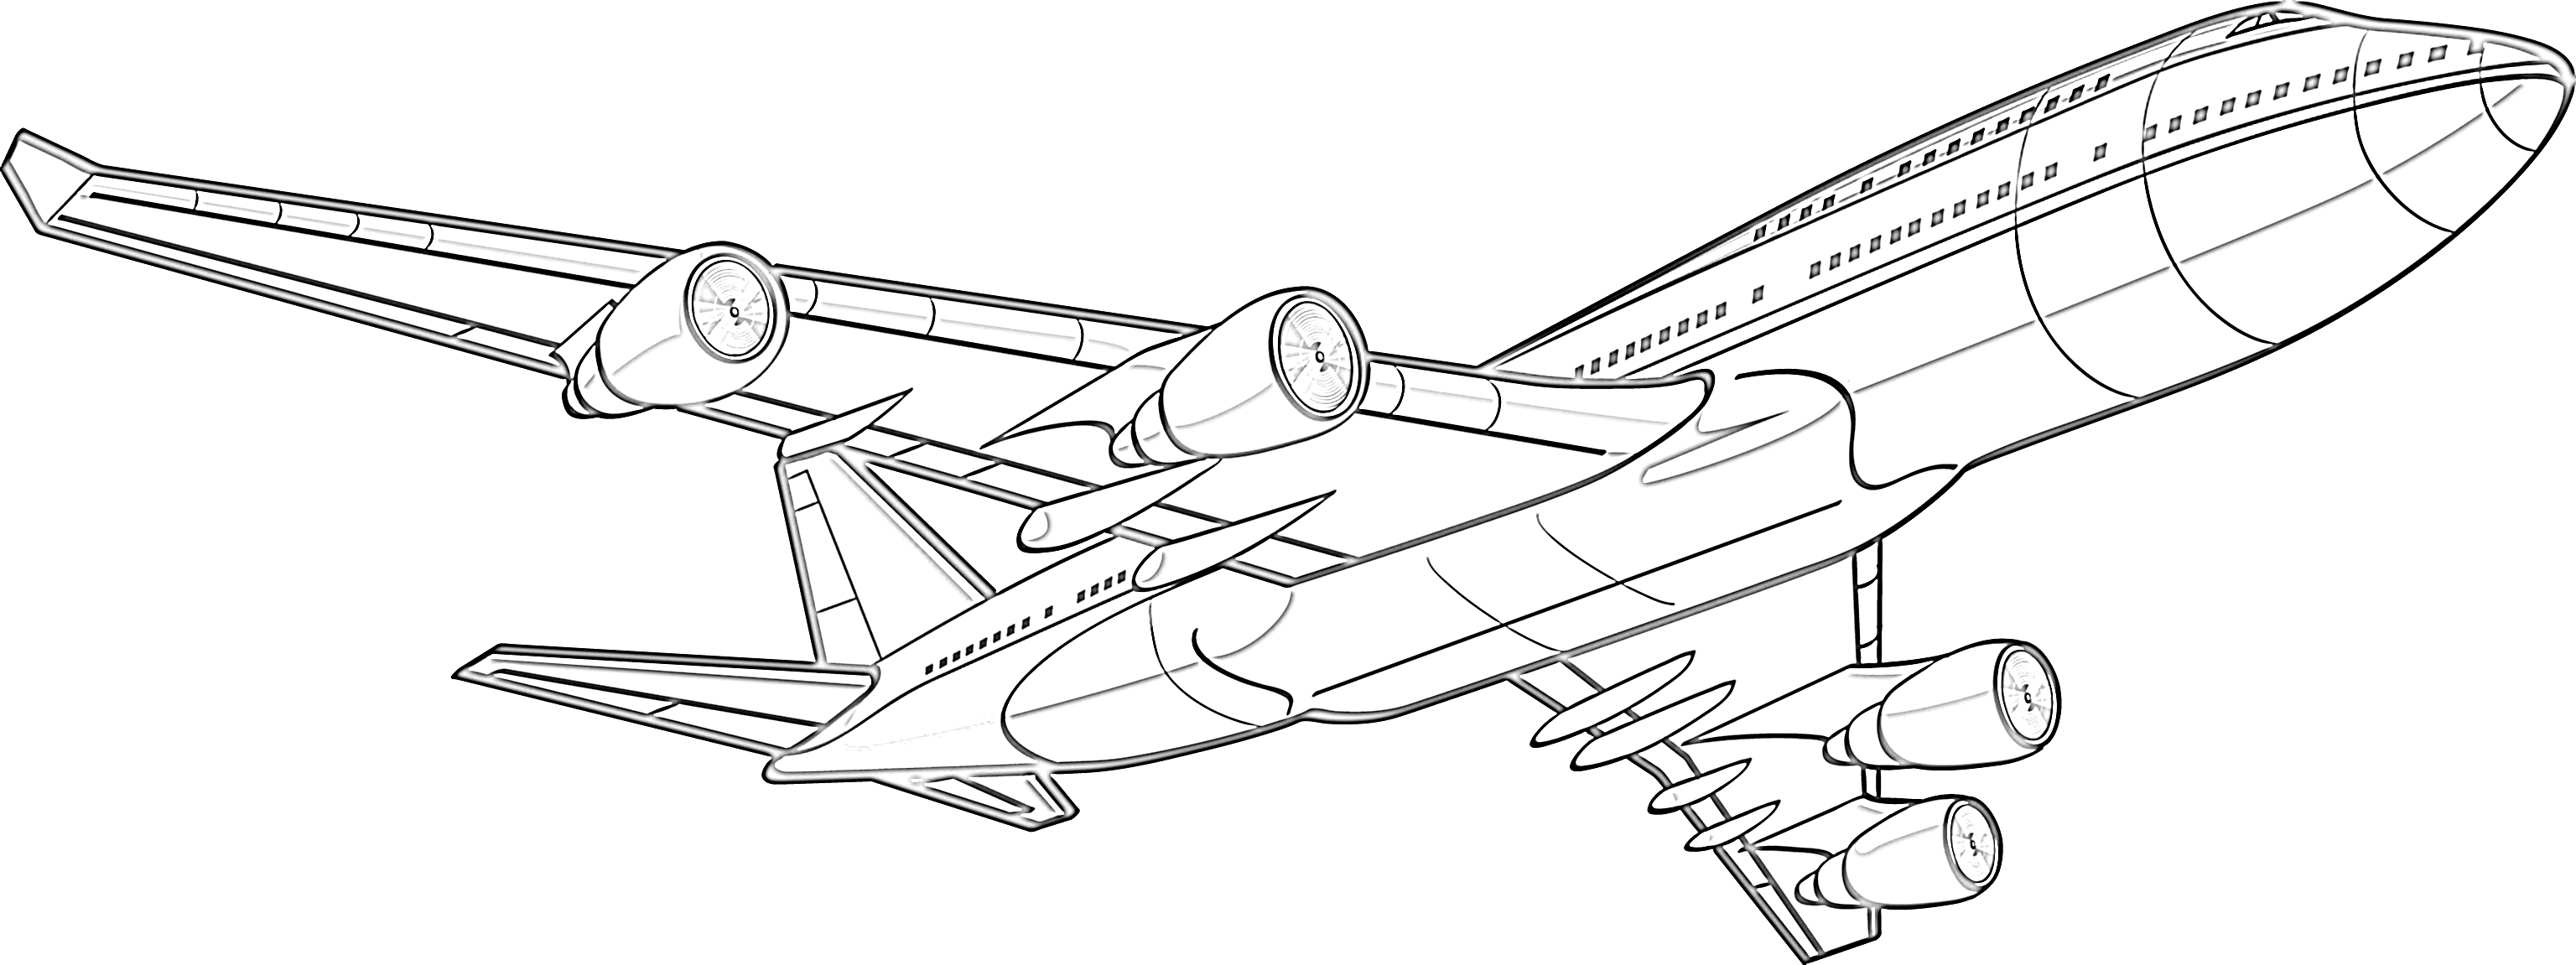 air plane coloring pages airplane coloring pages coloring pages to download and print plane air pages coloring